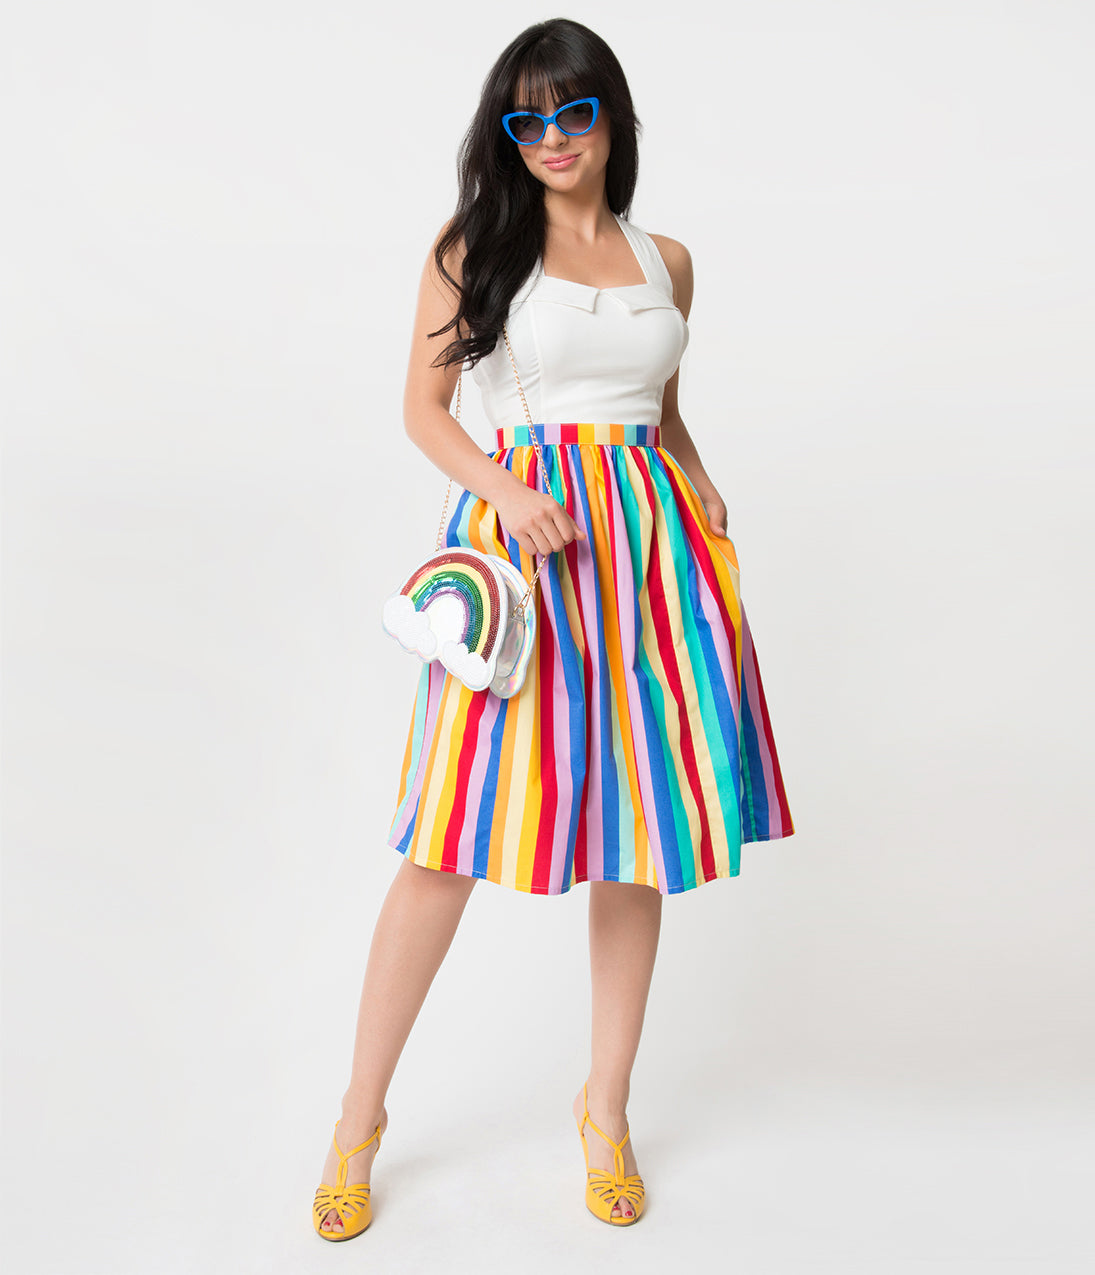 1950s Swing Skirt, Poodle Skirt, Pencil Skirts Rainbow Striped Gathered Cotton Swing Skirt $58.00 AT vintagedancer.com